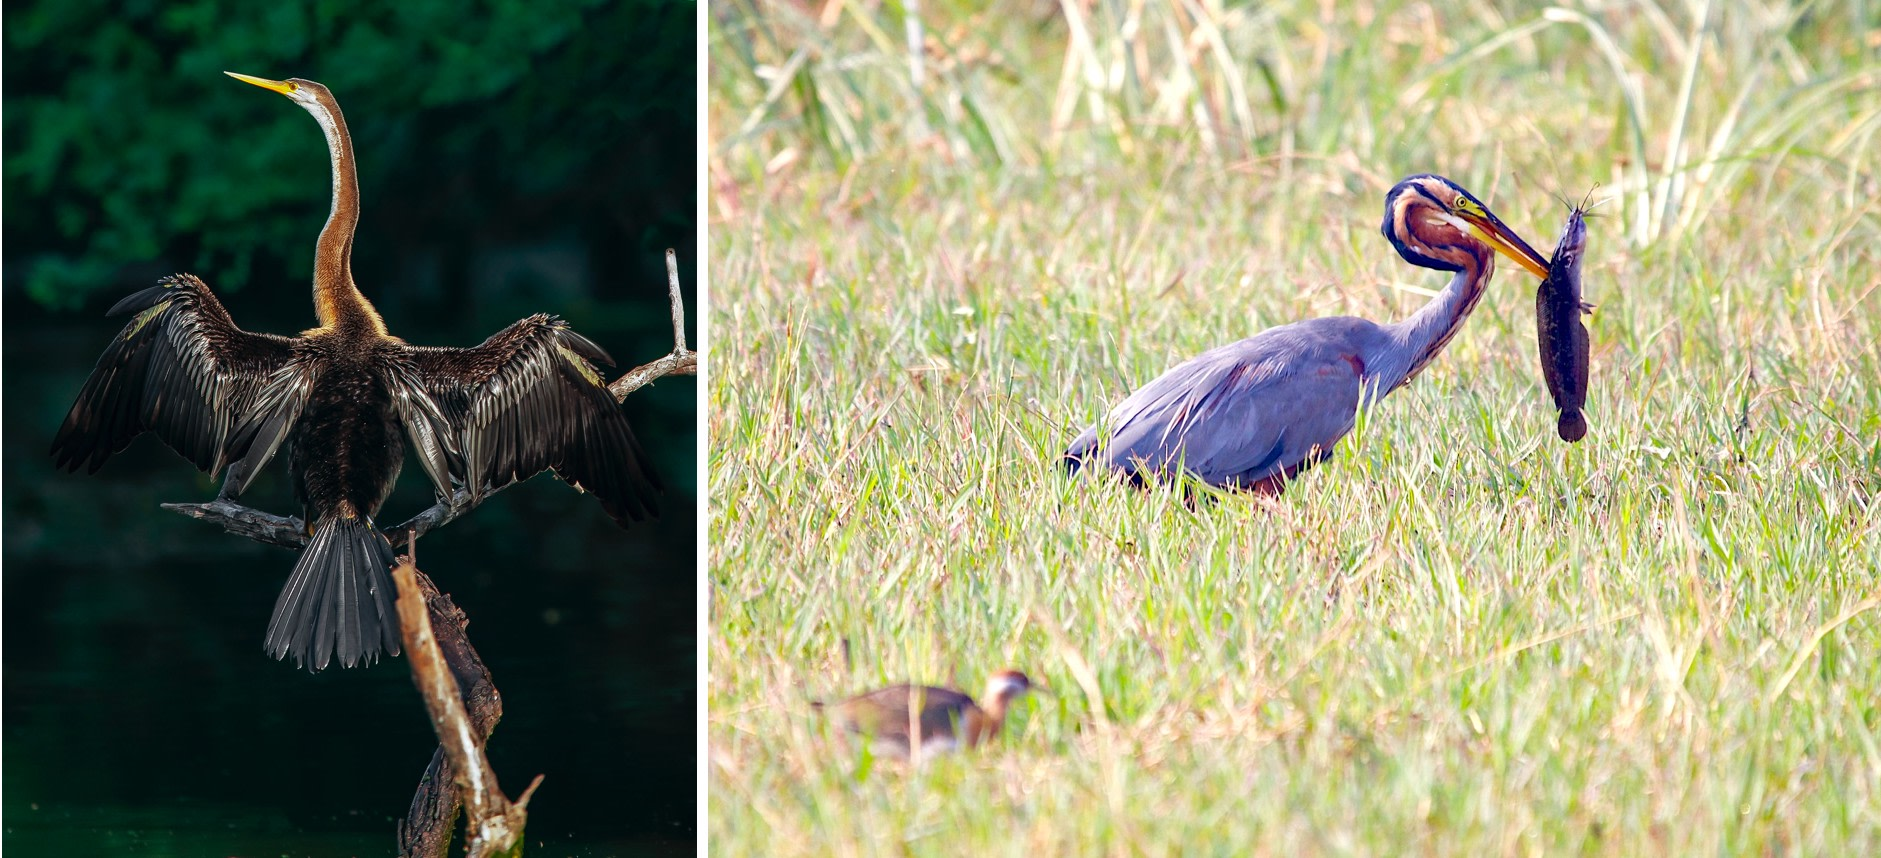 The oriental darter has a long, slender snake-like neck that often sticks out of the water while it's swimming, making it look like a snake is riding on calm waters (left). The purple heron is a winter visitor to India, and feeds on fish, rodents, reptiles, and insects (right). Photo: Dhritiman Mukherjee (left), Photo: Kandukuru Nagarjun (right)